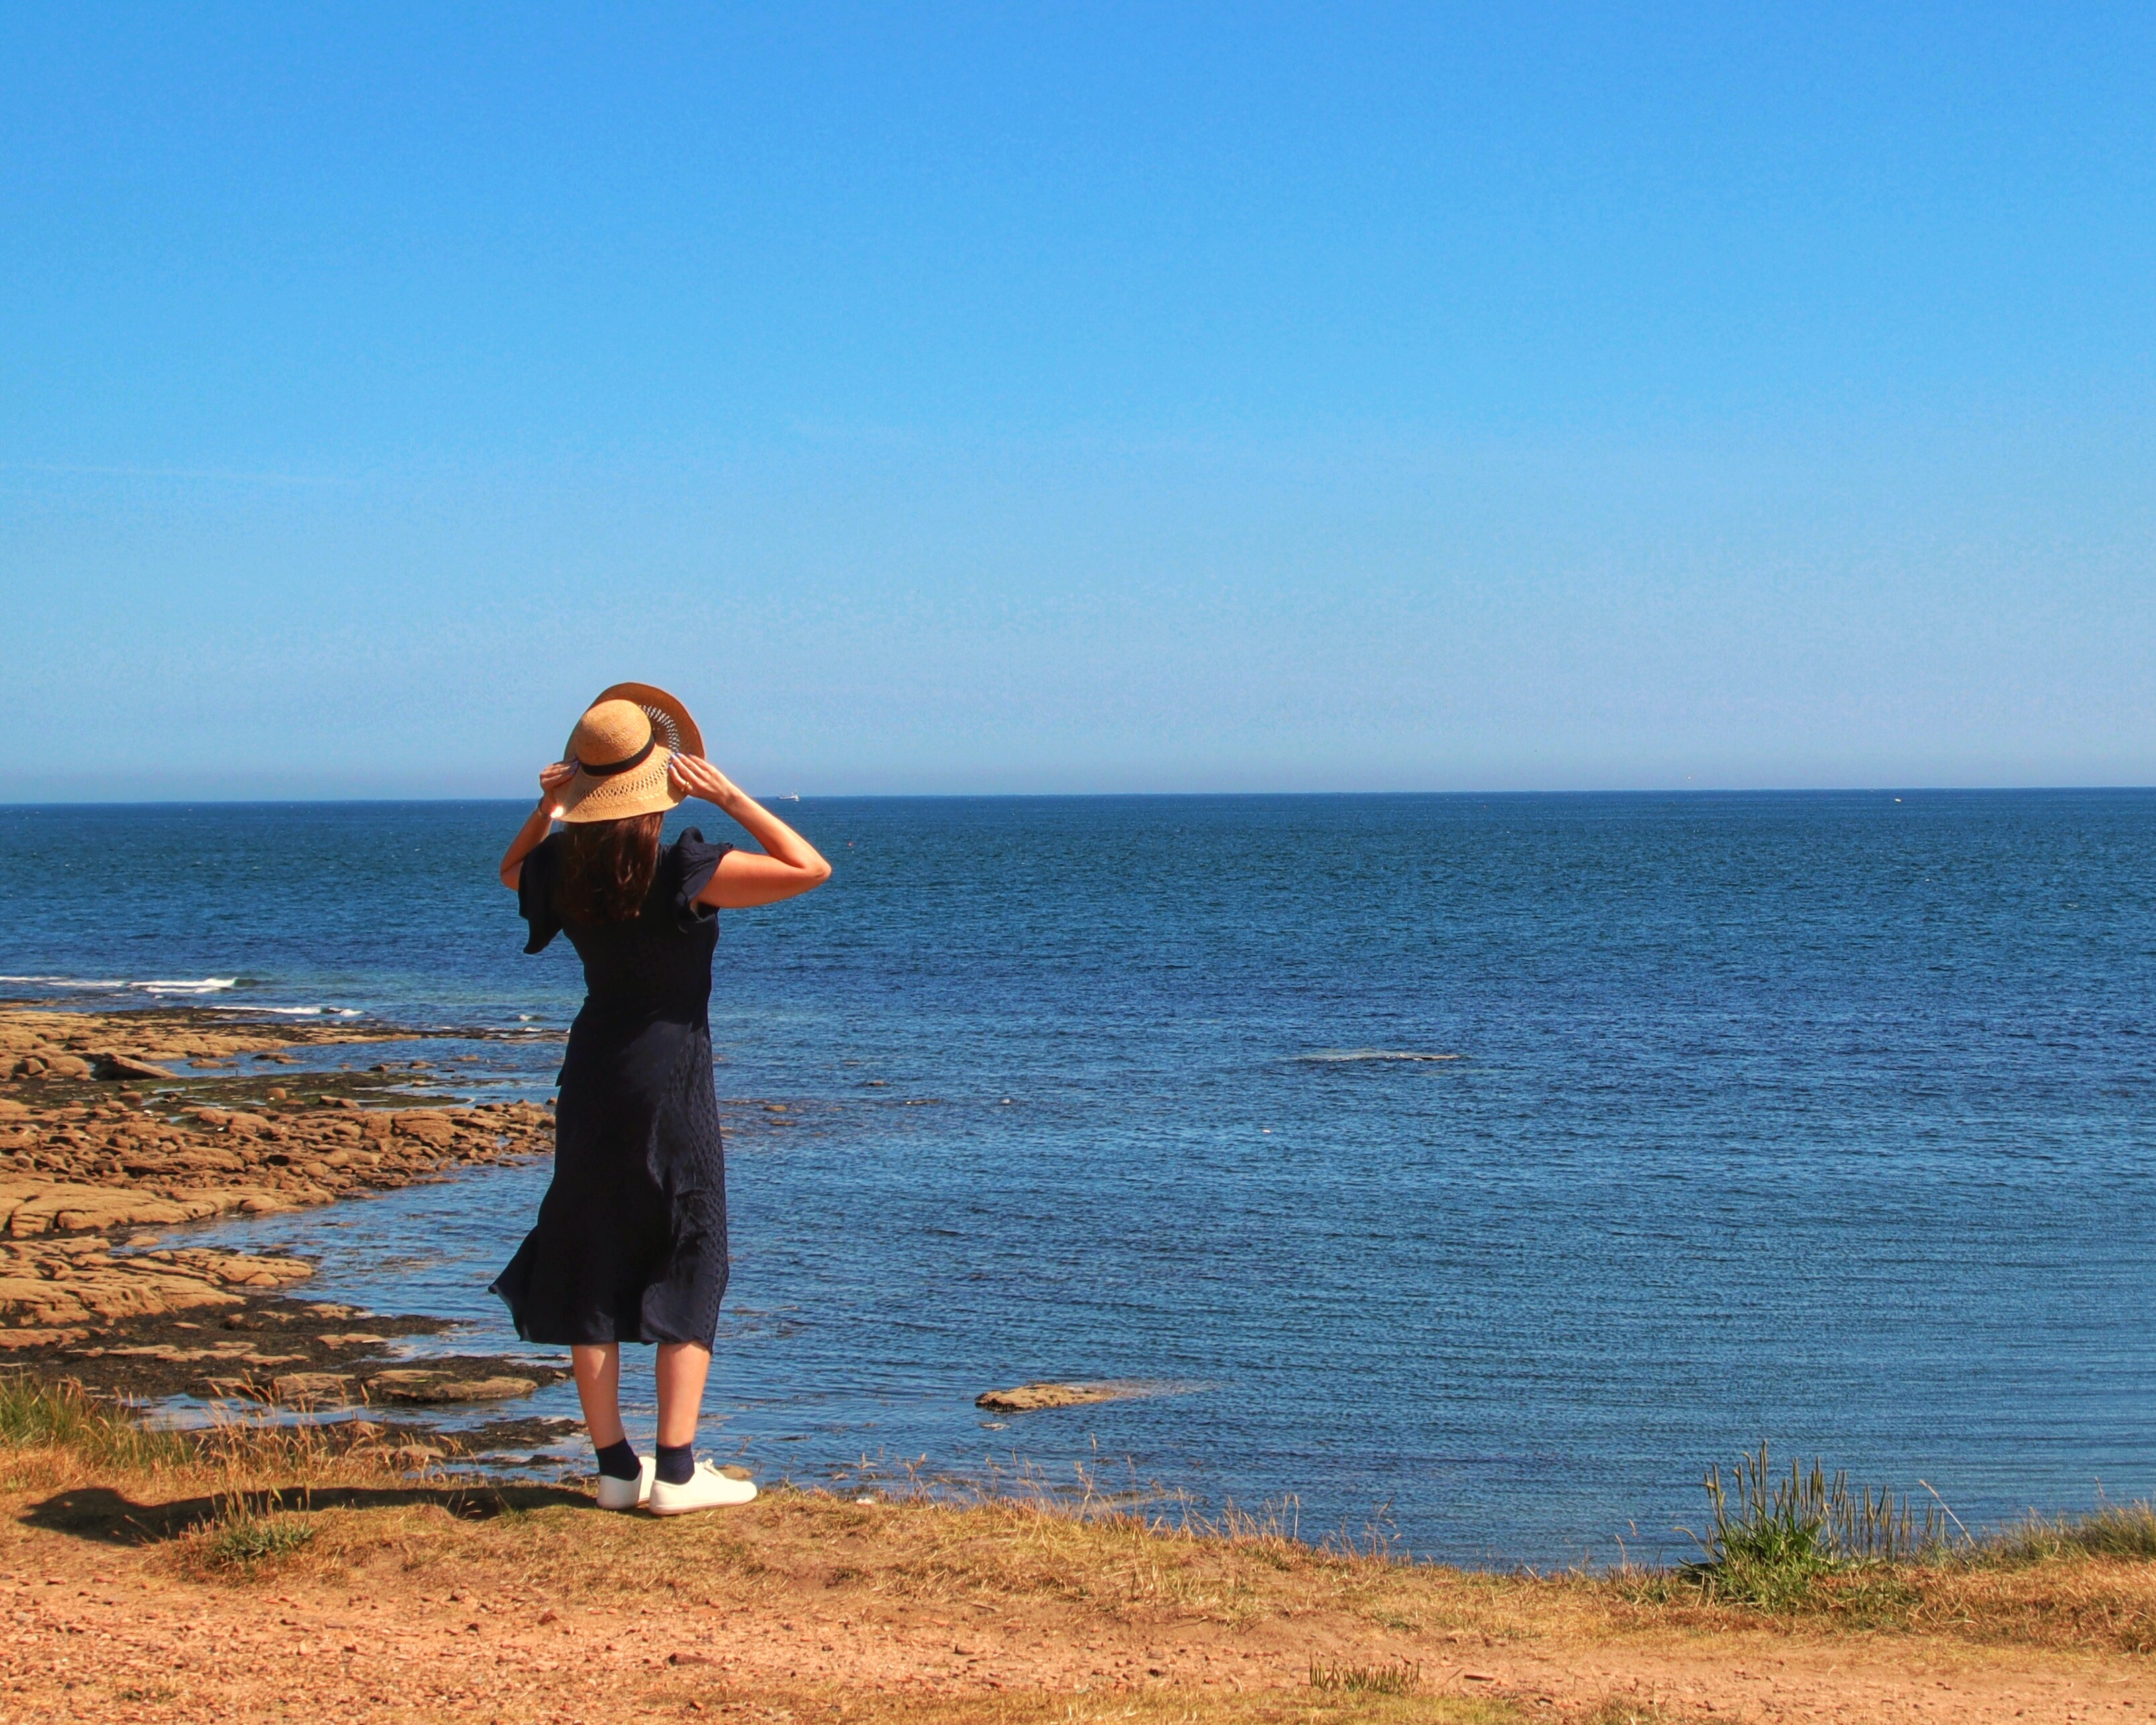 This image shows a woman over looking the coastline in Northumberland. She is standing on the top of the dunes wearing a blue dress and white trainers. It is a beautifully sunny day, with a breeze as she holds onto her sun hat with both hands. The sky and sea are beautiful tones of blue.